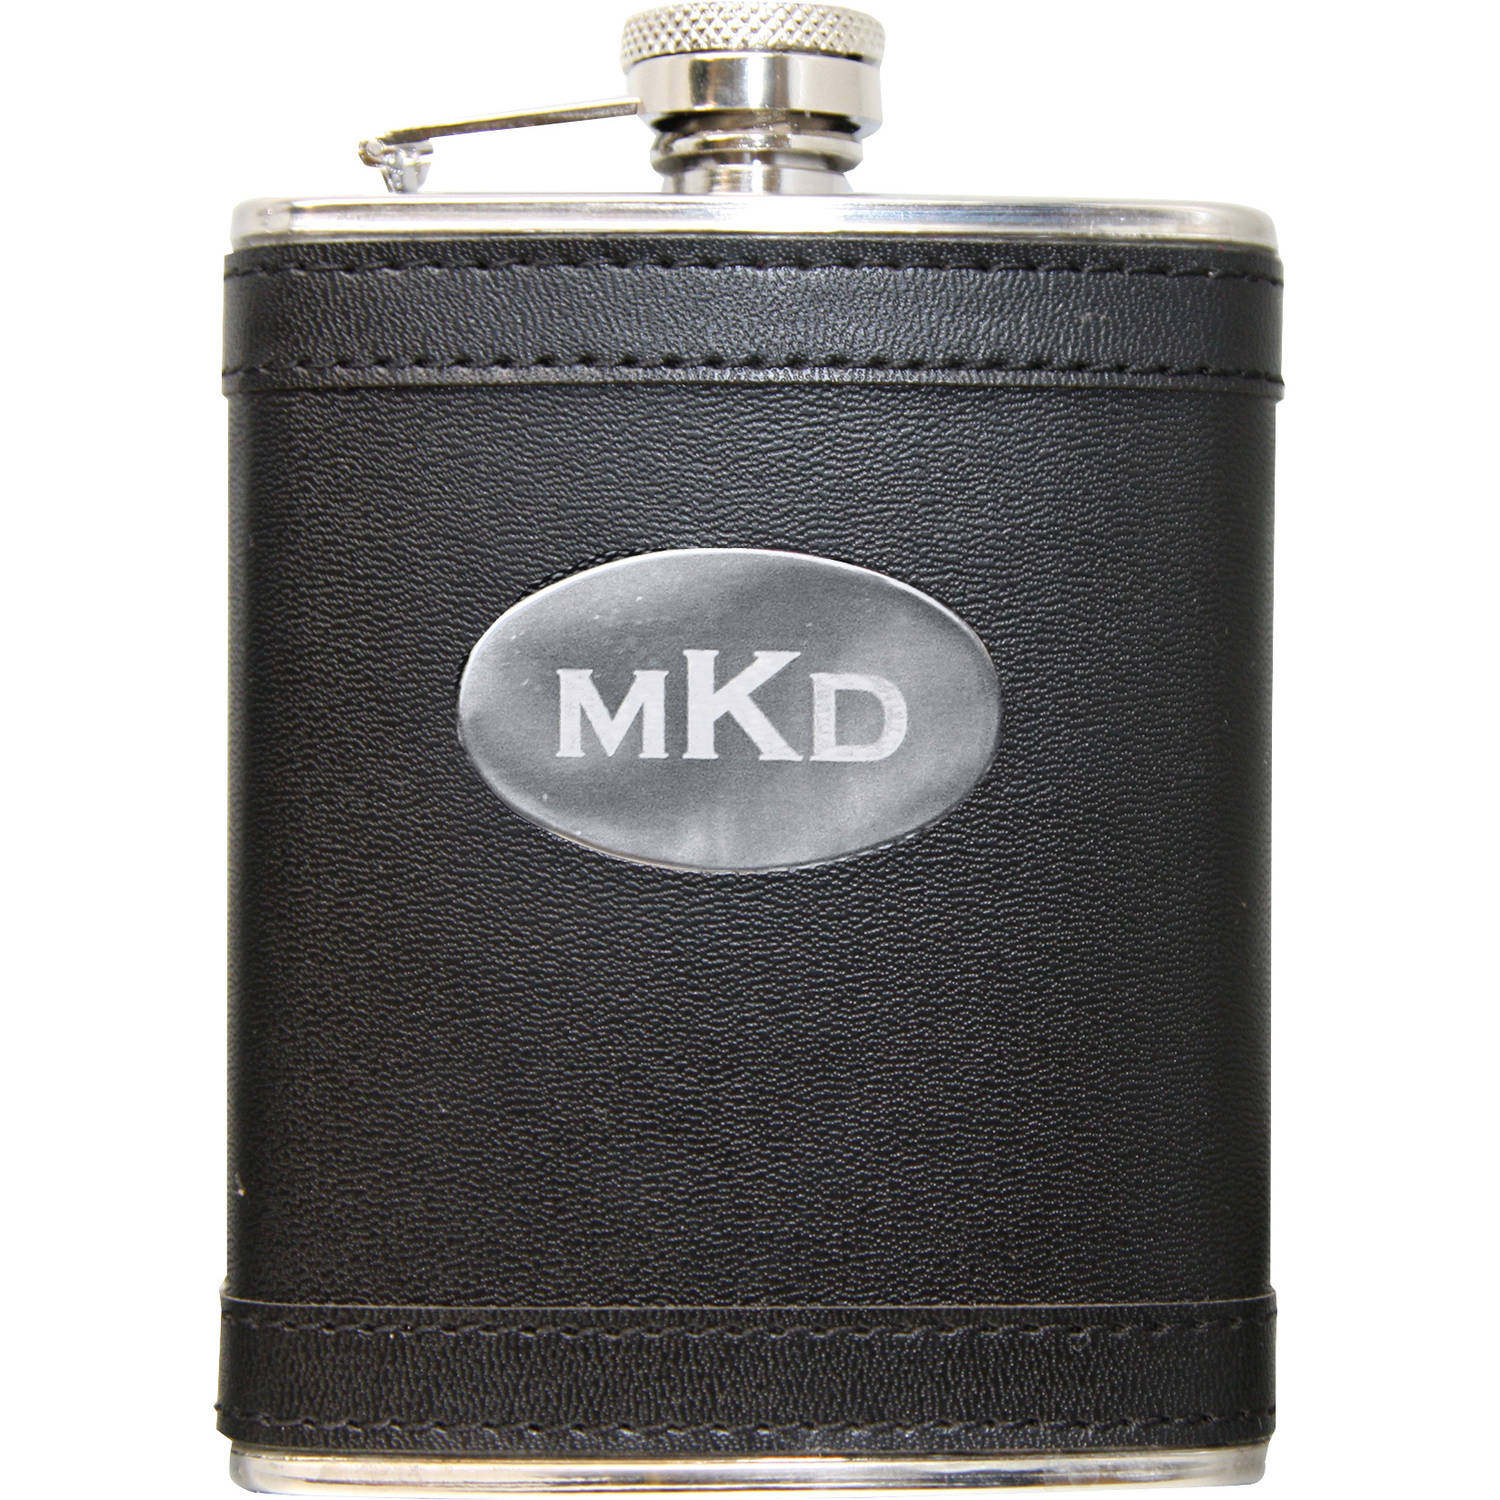 Personalized Leather Wrapped Flask, Available in 3 Colors